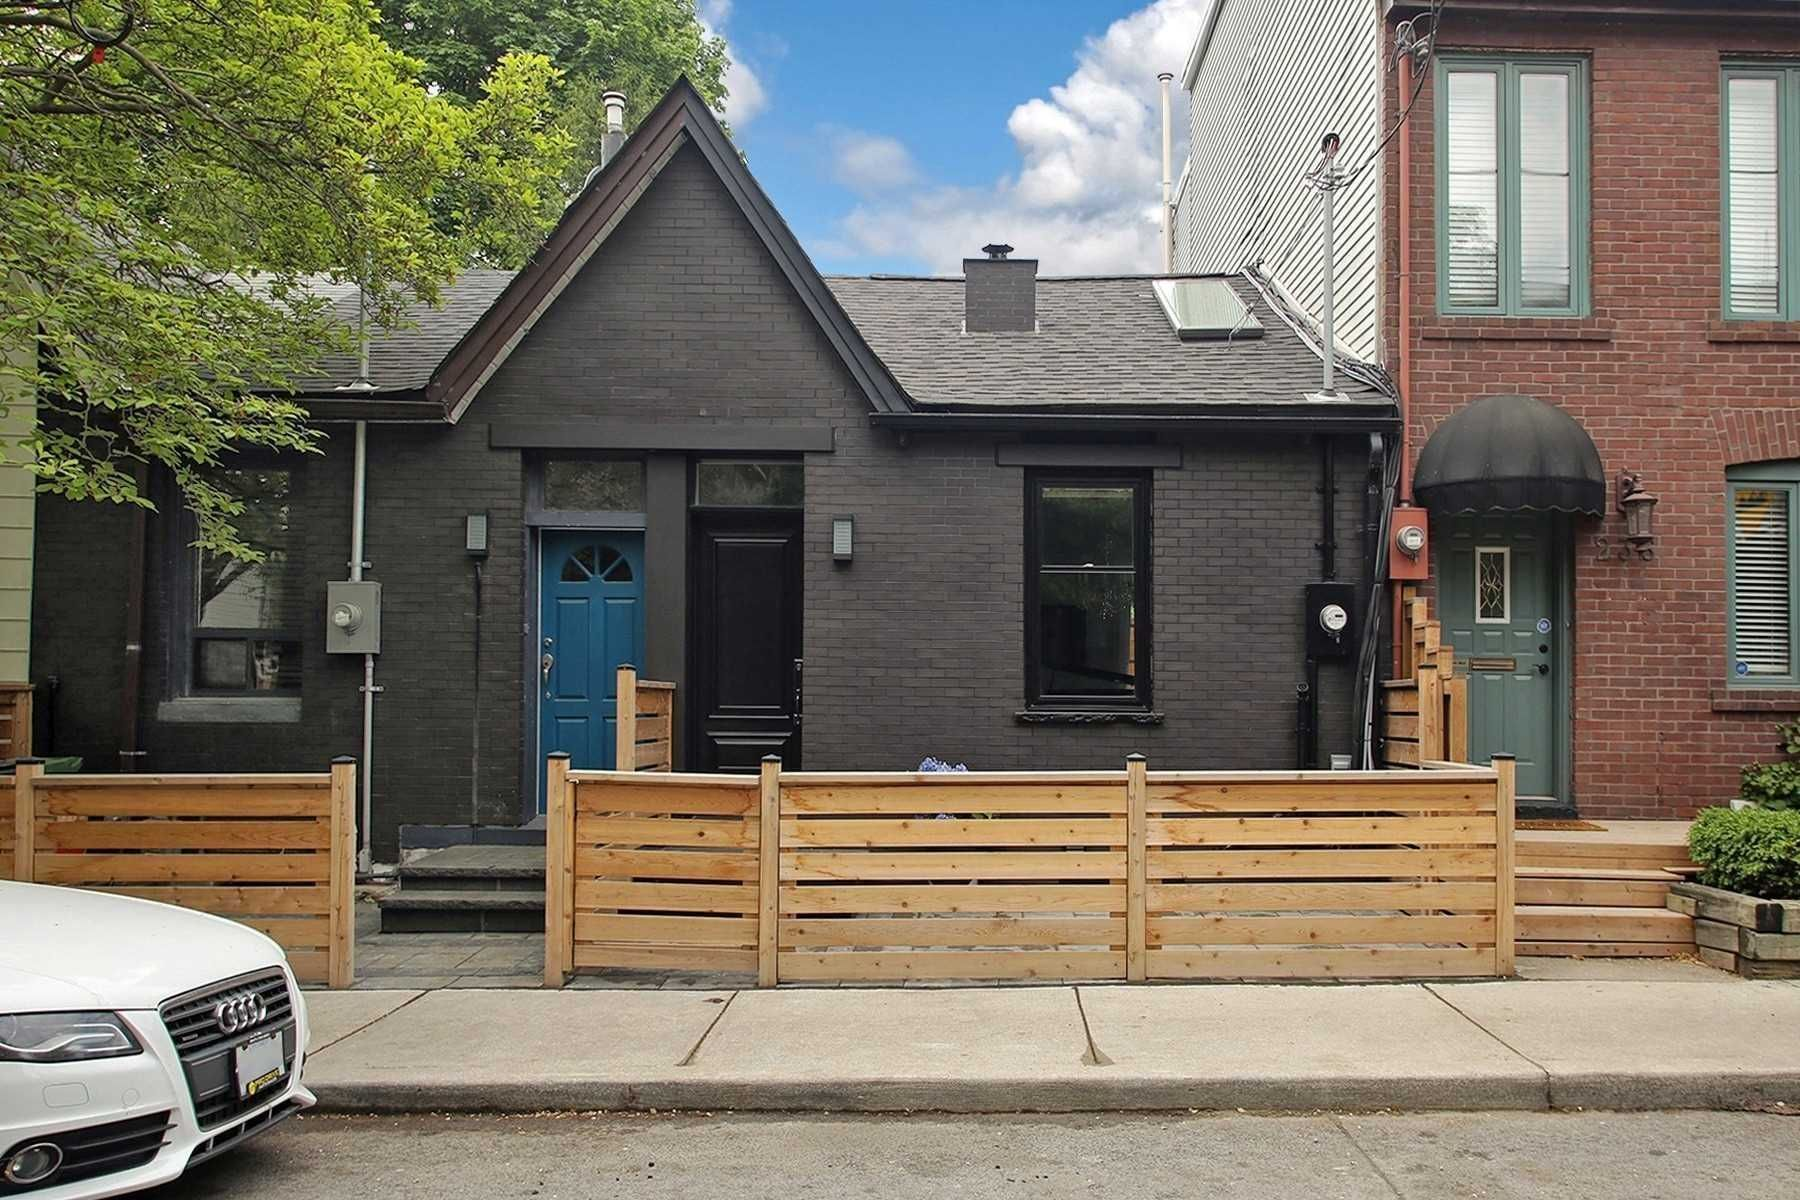 Main Photo: 234 Ontario Street in Toronto: Cabbagetown-South St. James Town House (Bungalow) for sale (Toronto C08)  : MLS®# C5371009